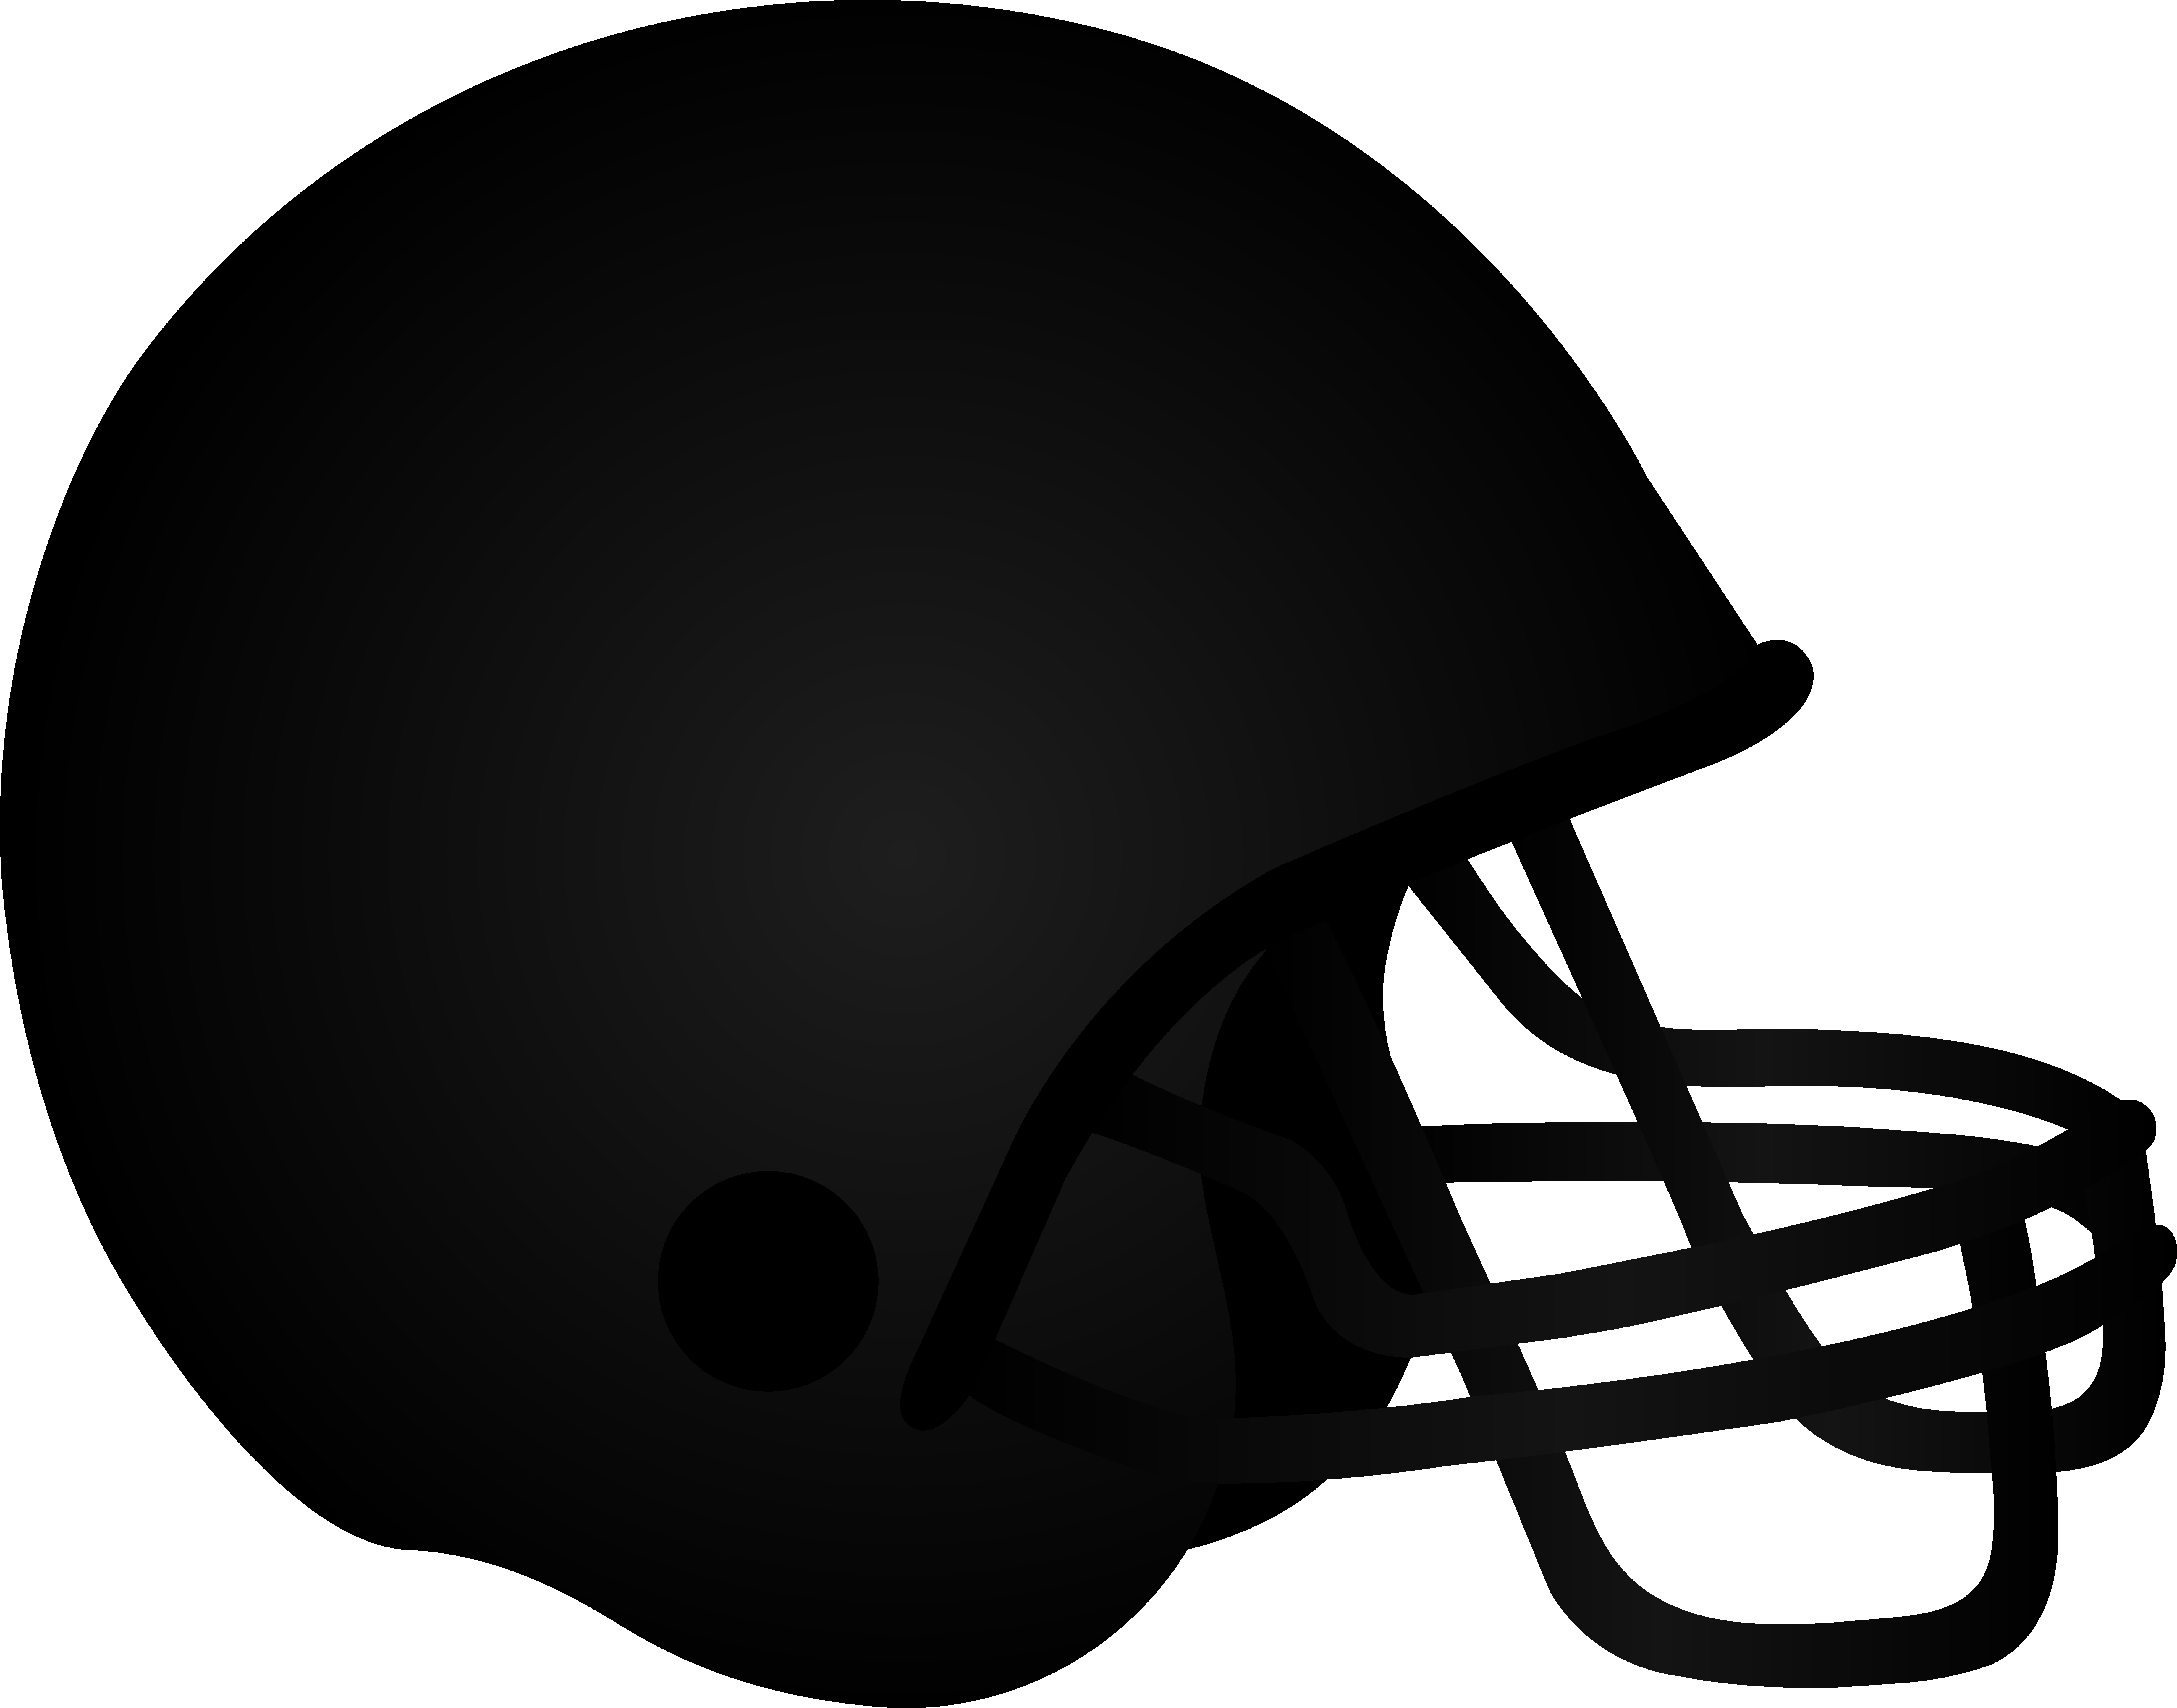 Packers football clipart image freeuse stock Football Helmet Silhouette at GetDrawings.com | Free for personal ... image freeuse stock